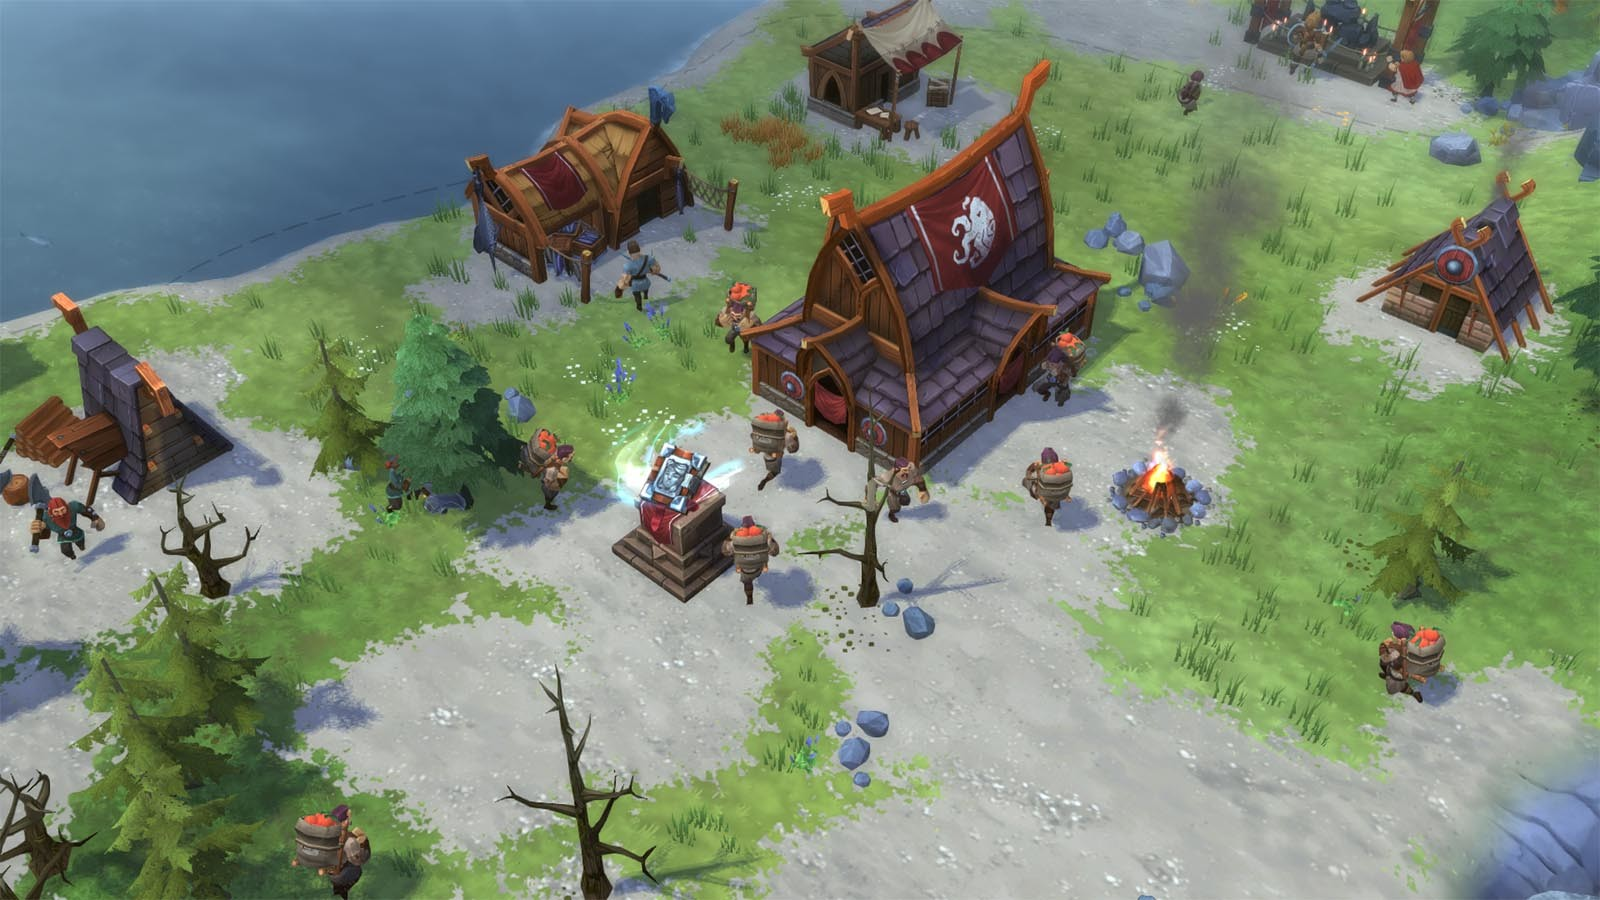 Northgard - Lyngbakr, Clan of the Kraken [Steam CD Key] for PC, Mac and  Linux - Buy now